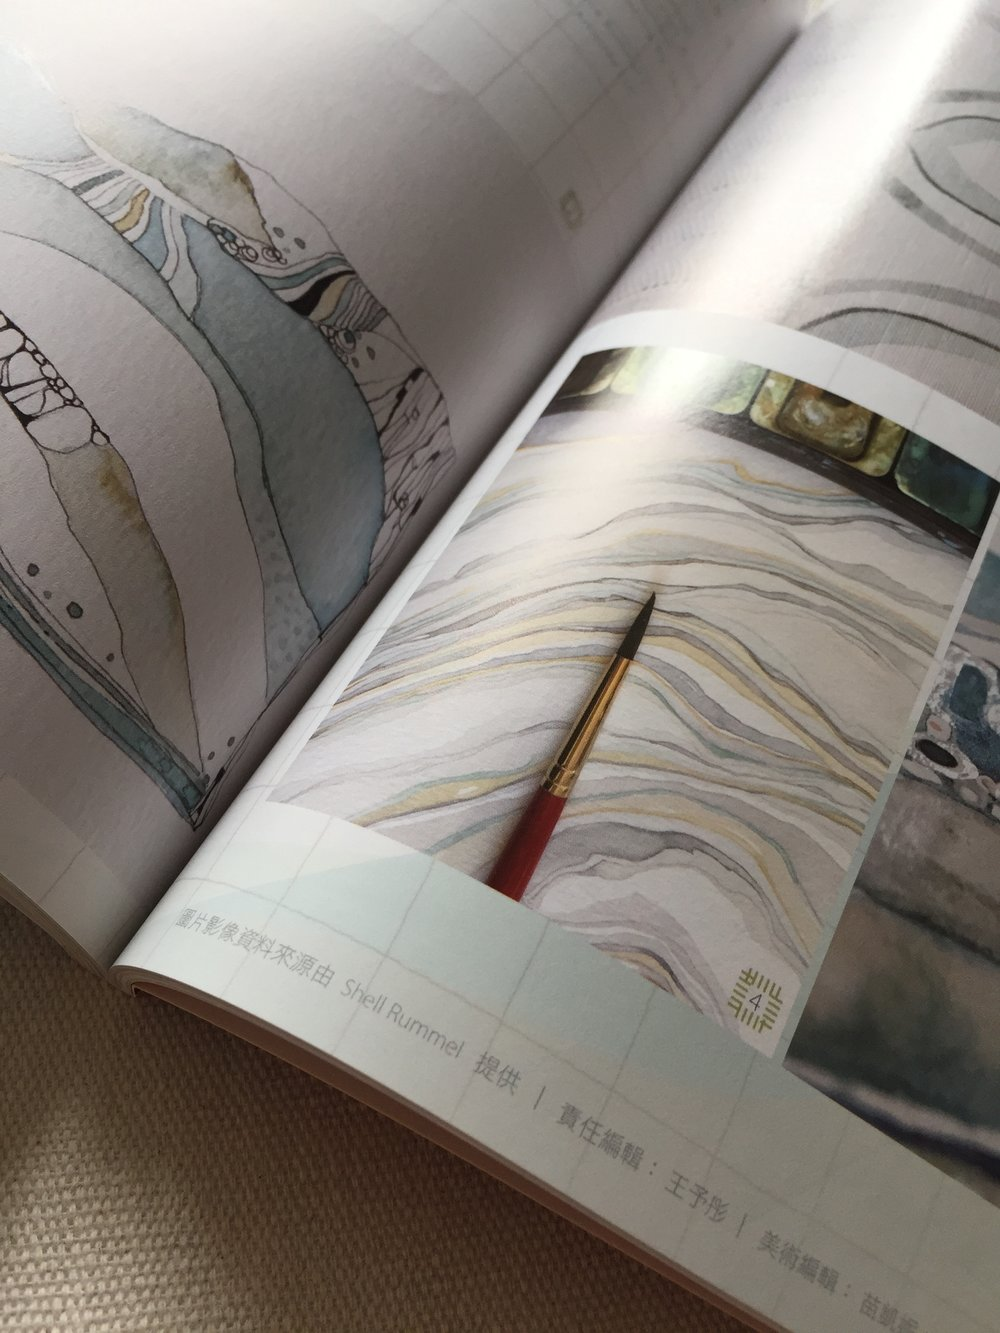 Shell Rummel feature article in dpi Magazine, Taiwan Read More...